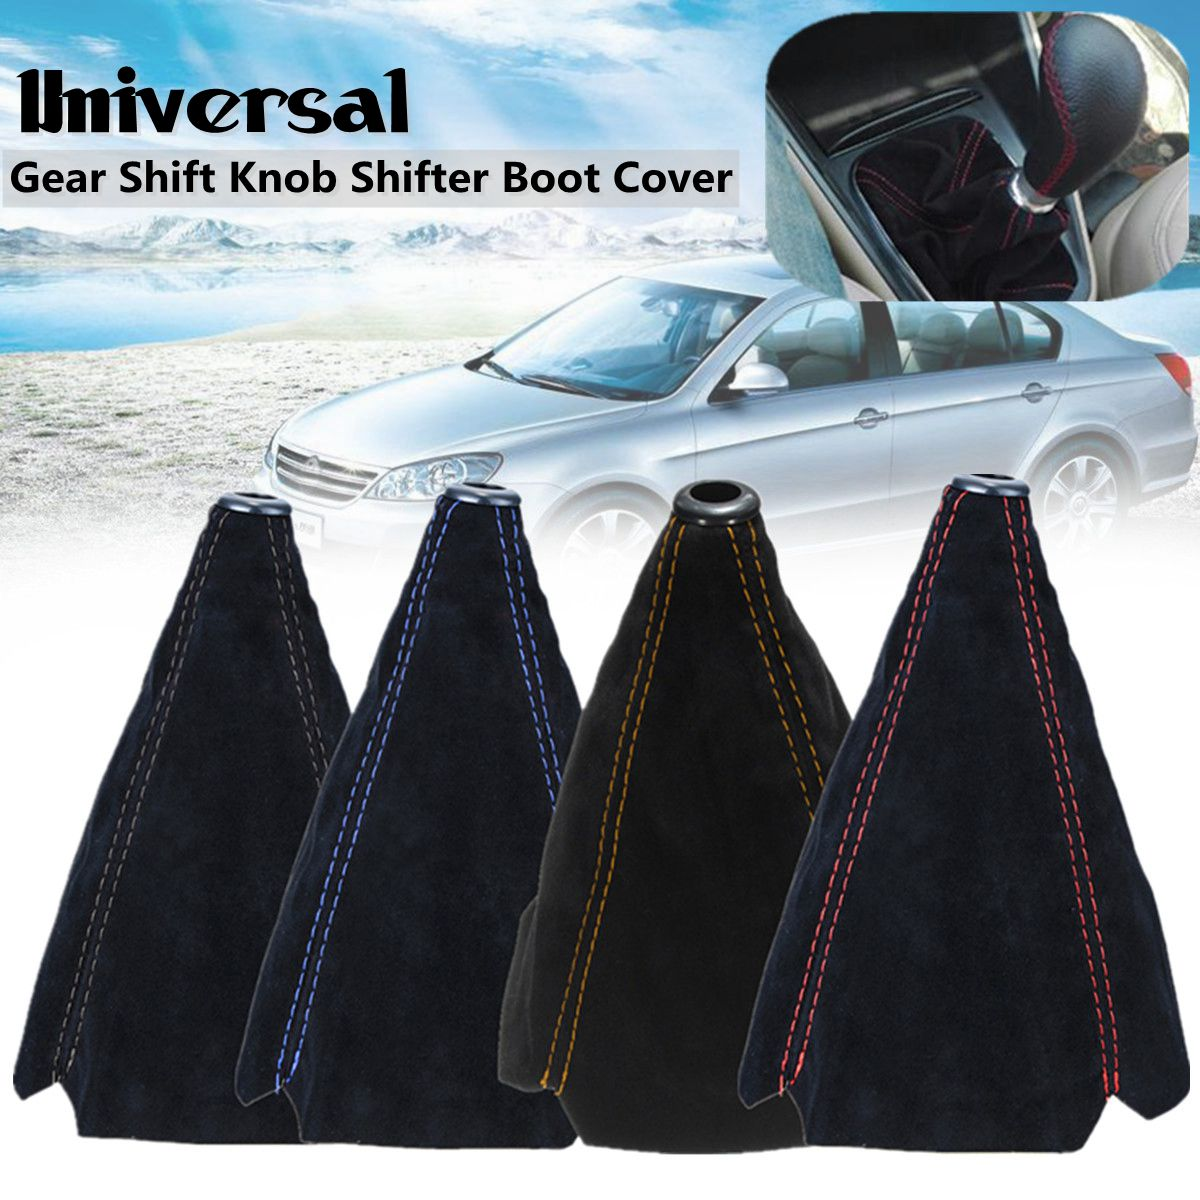 Universal Auto Manual Gear Shift Knob Boot Dust Cover,PU Leather Gear Shifter Boot Gear Gaiter Cover Black Bright Red Stitch